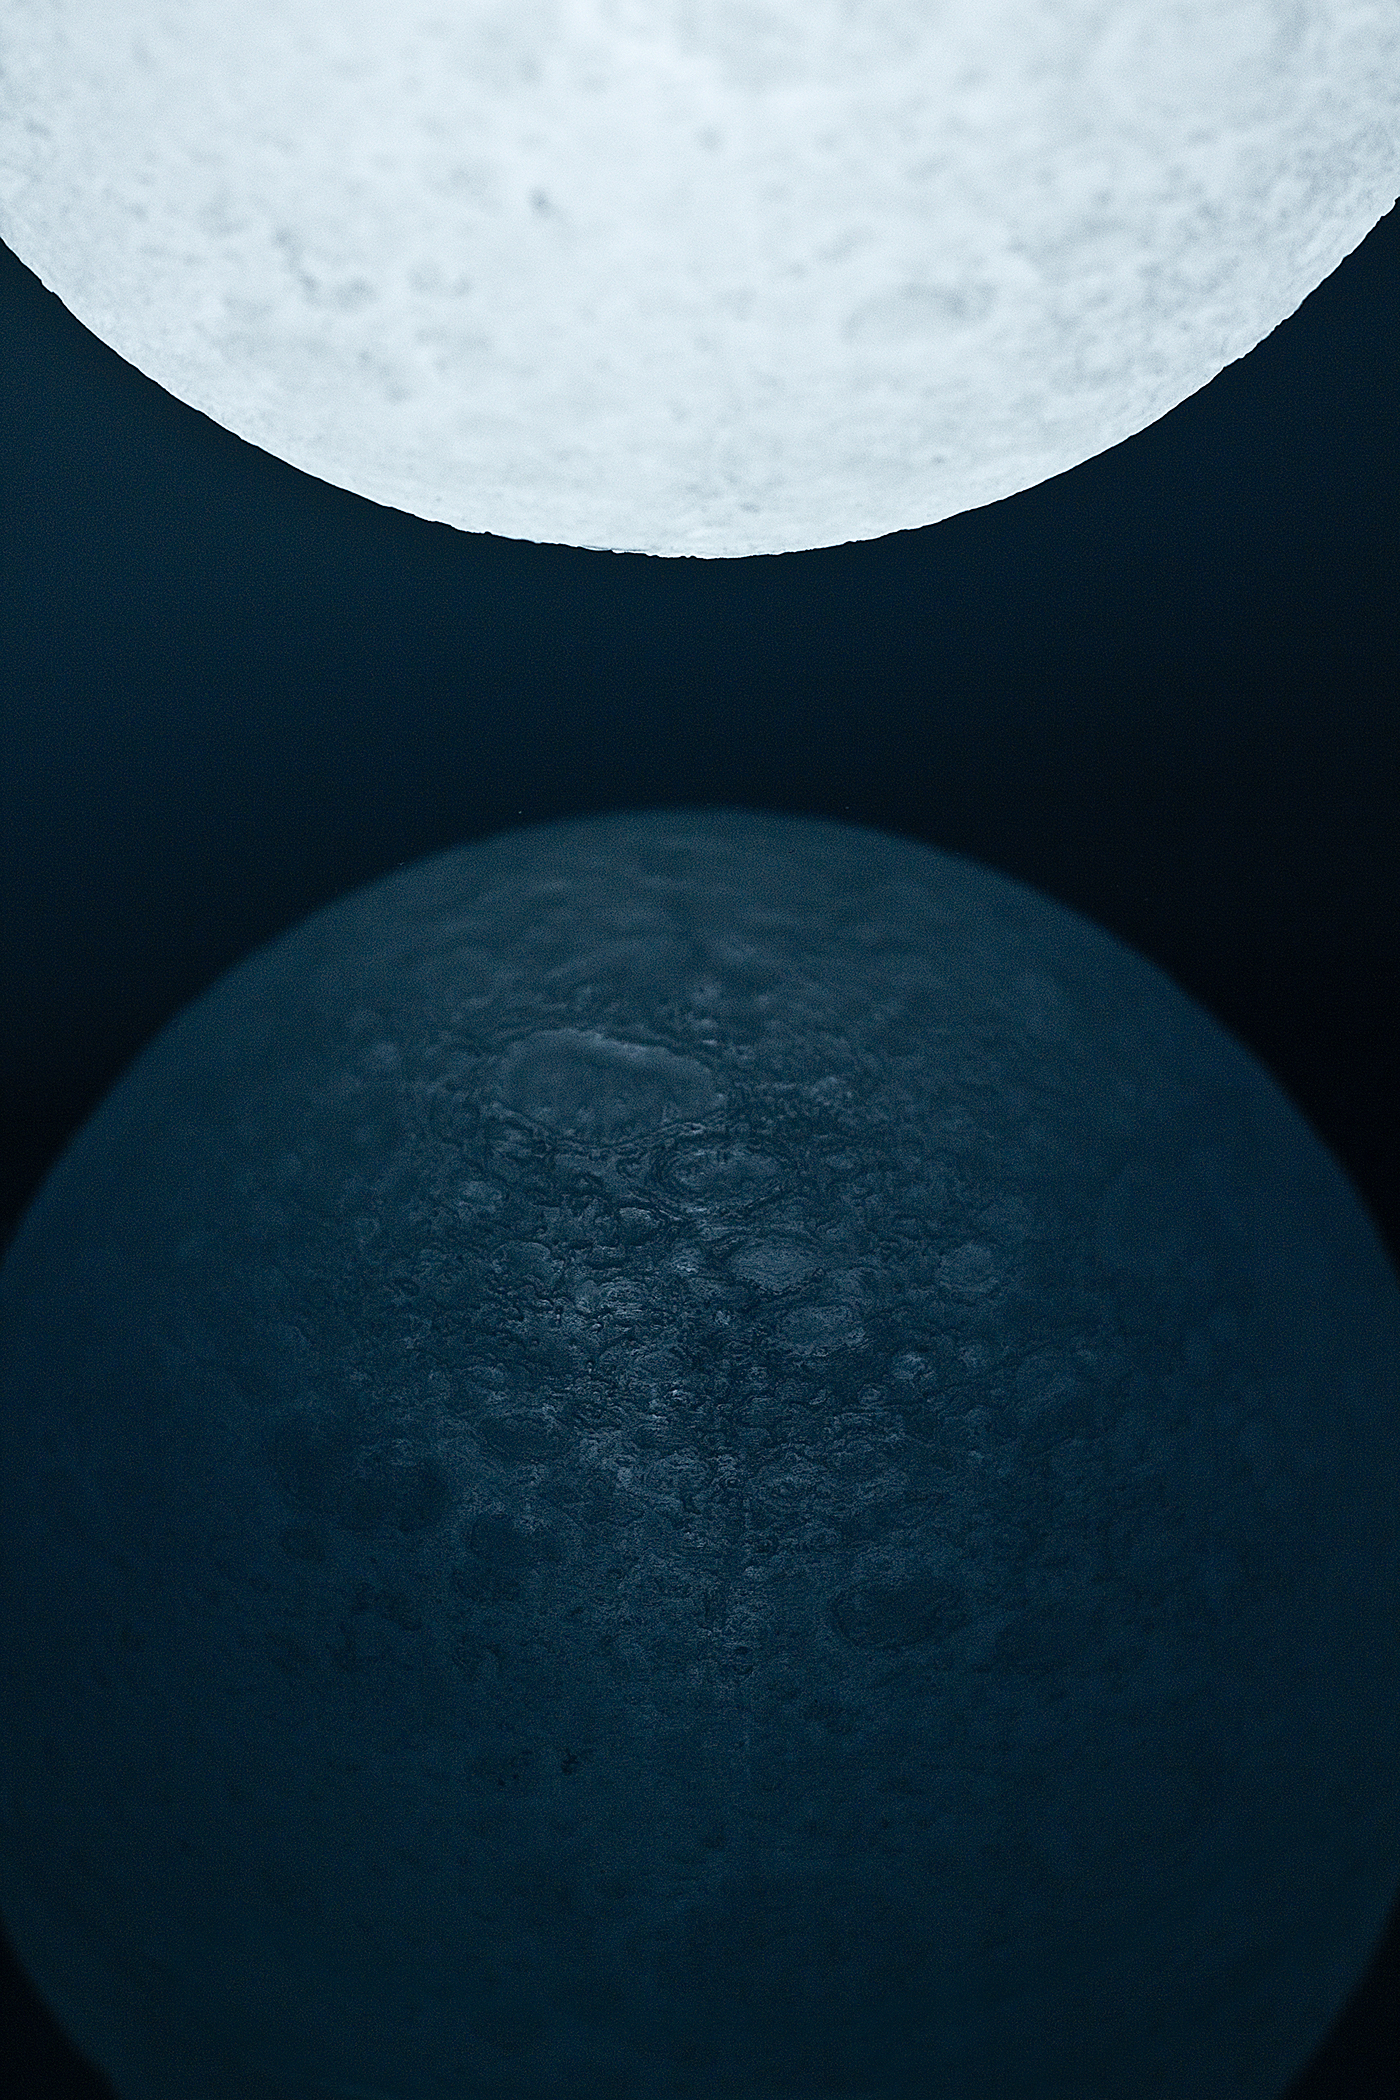 """THE MOON""LED灯具设计"